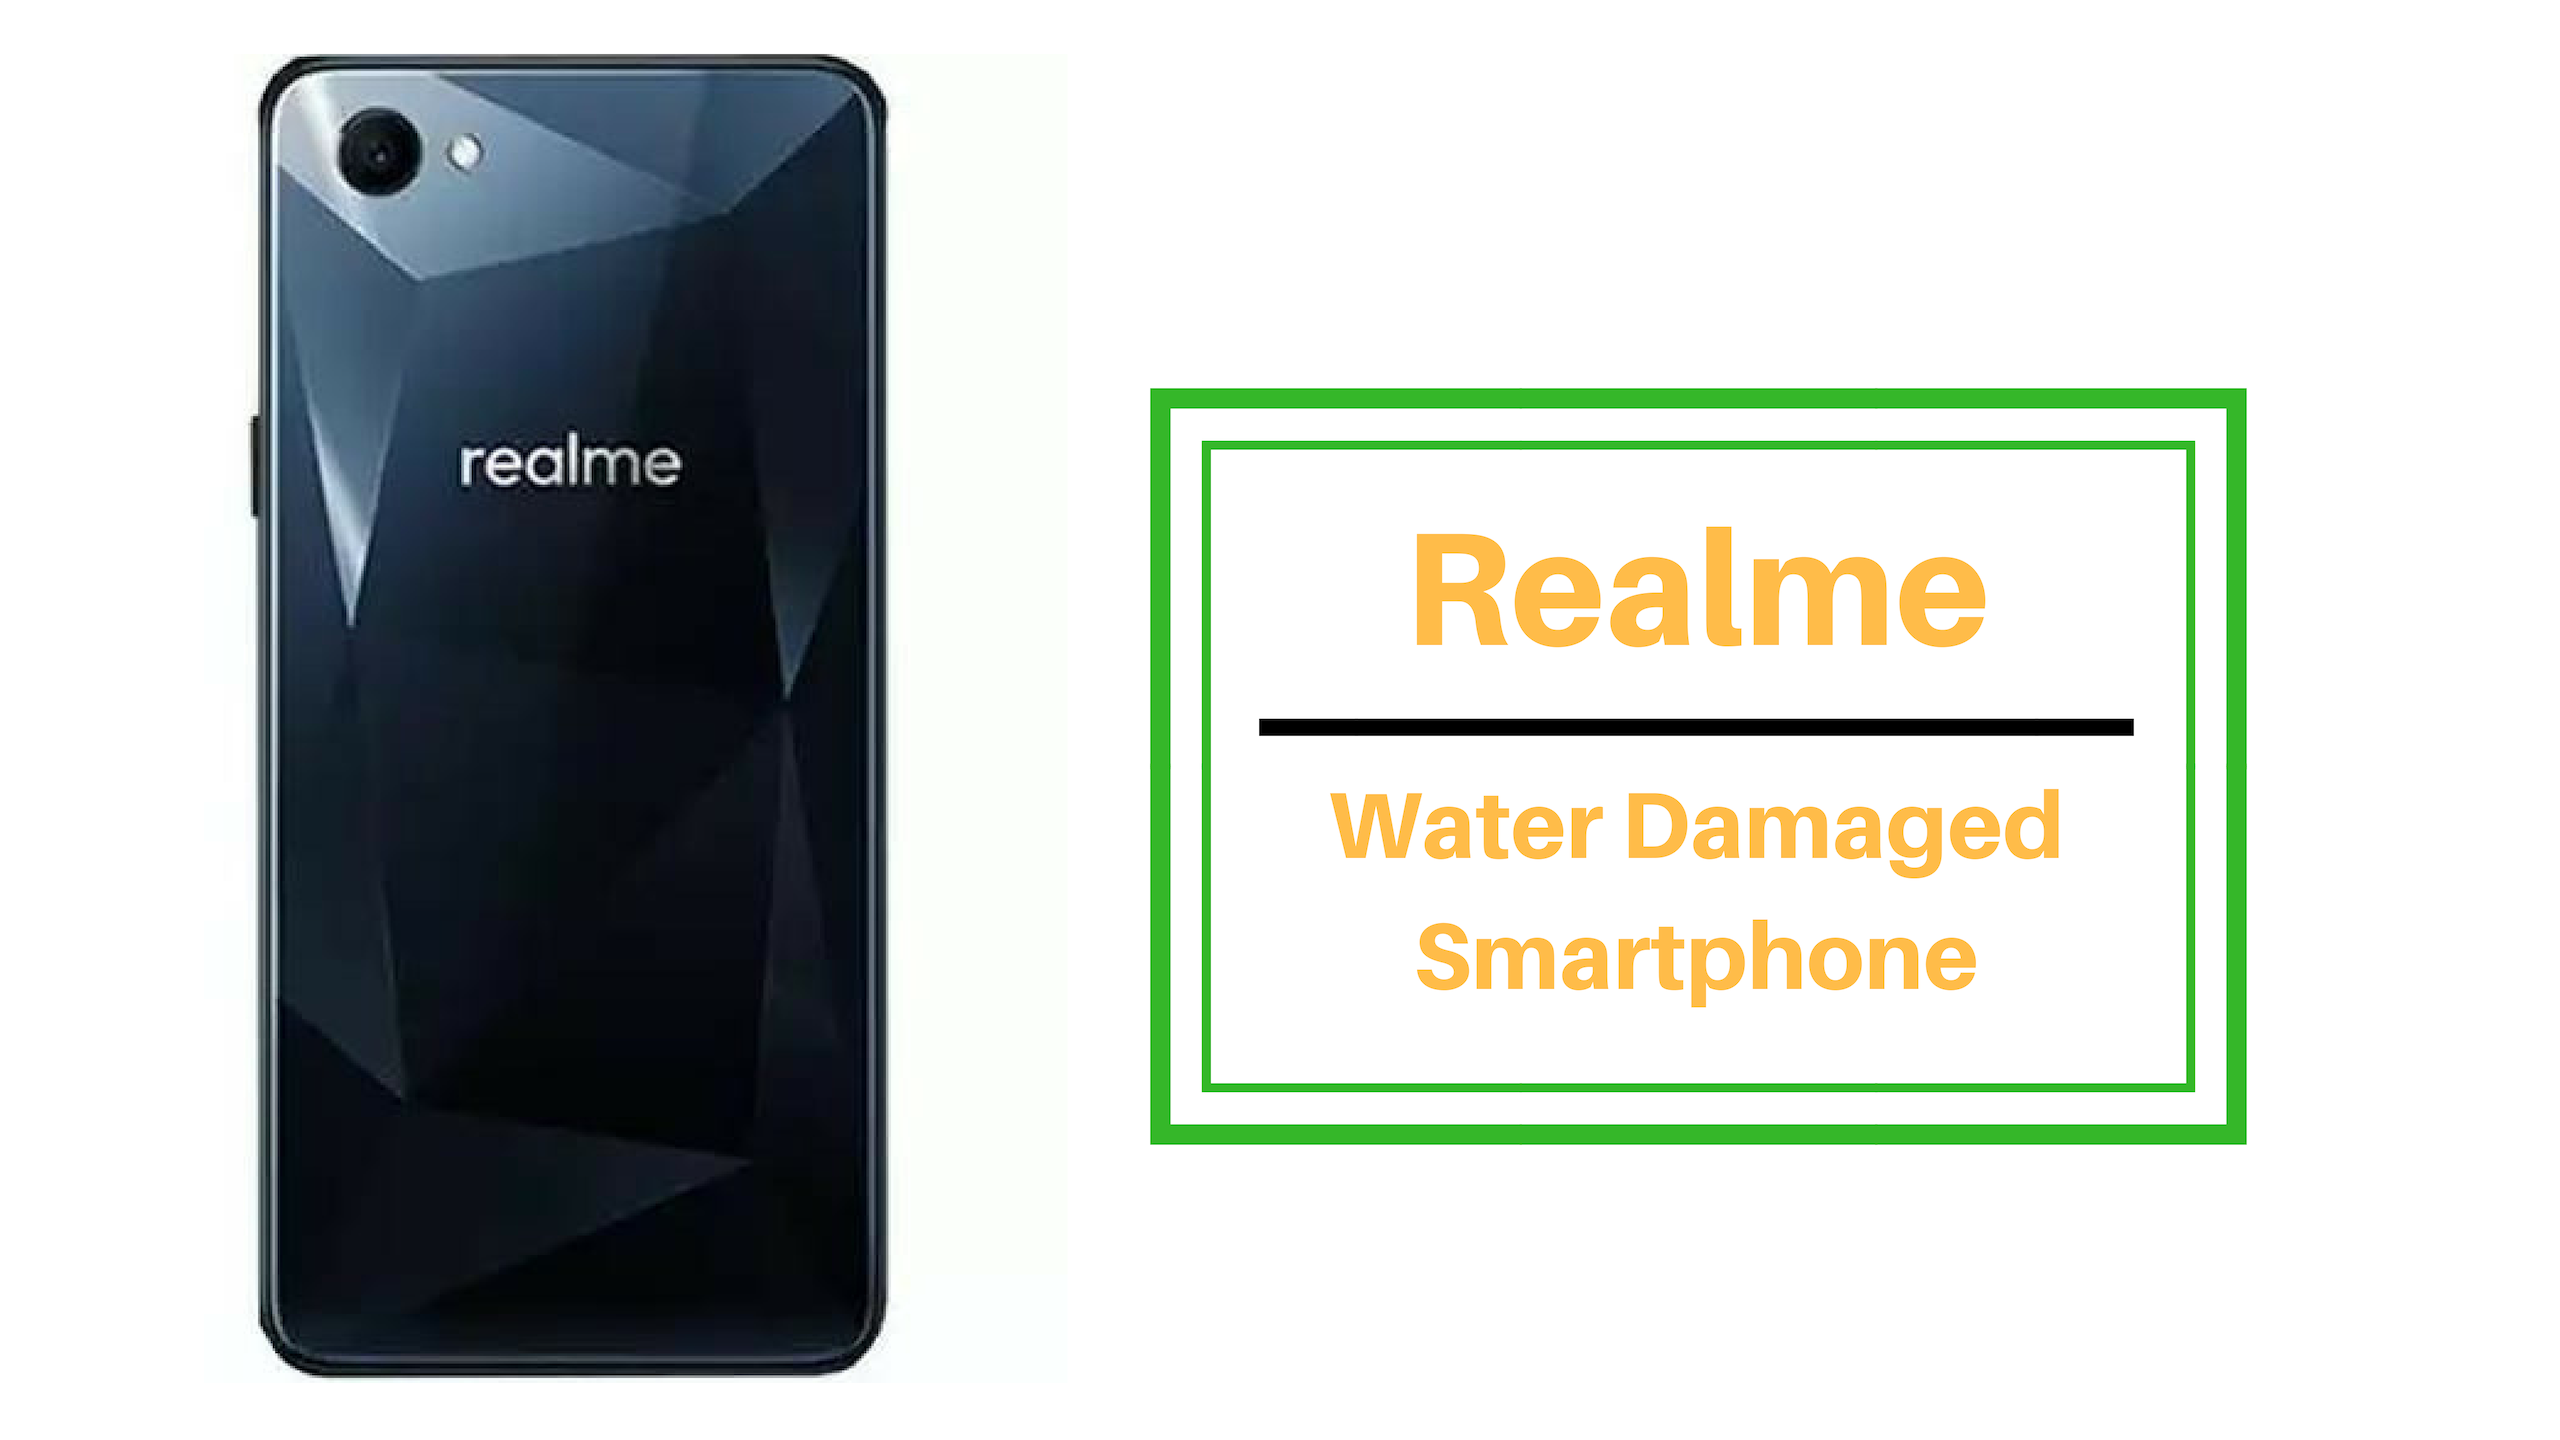 How to fix Realme water damaged smartphone?